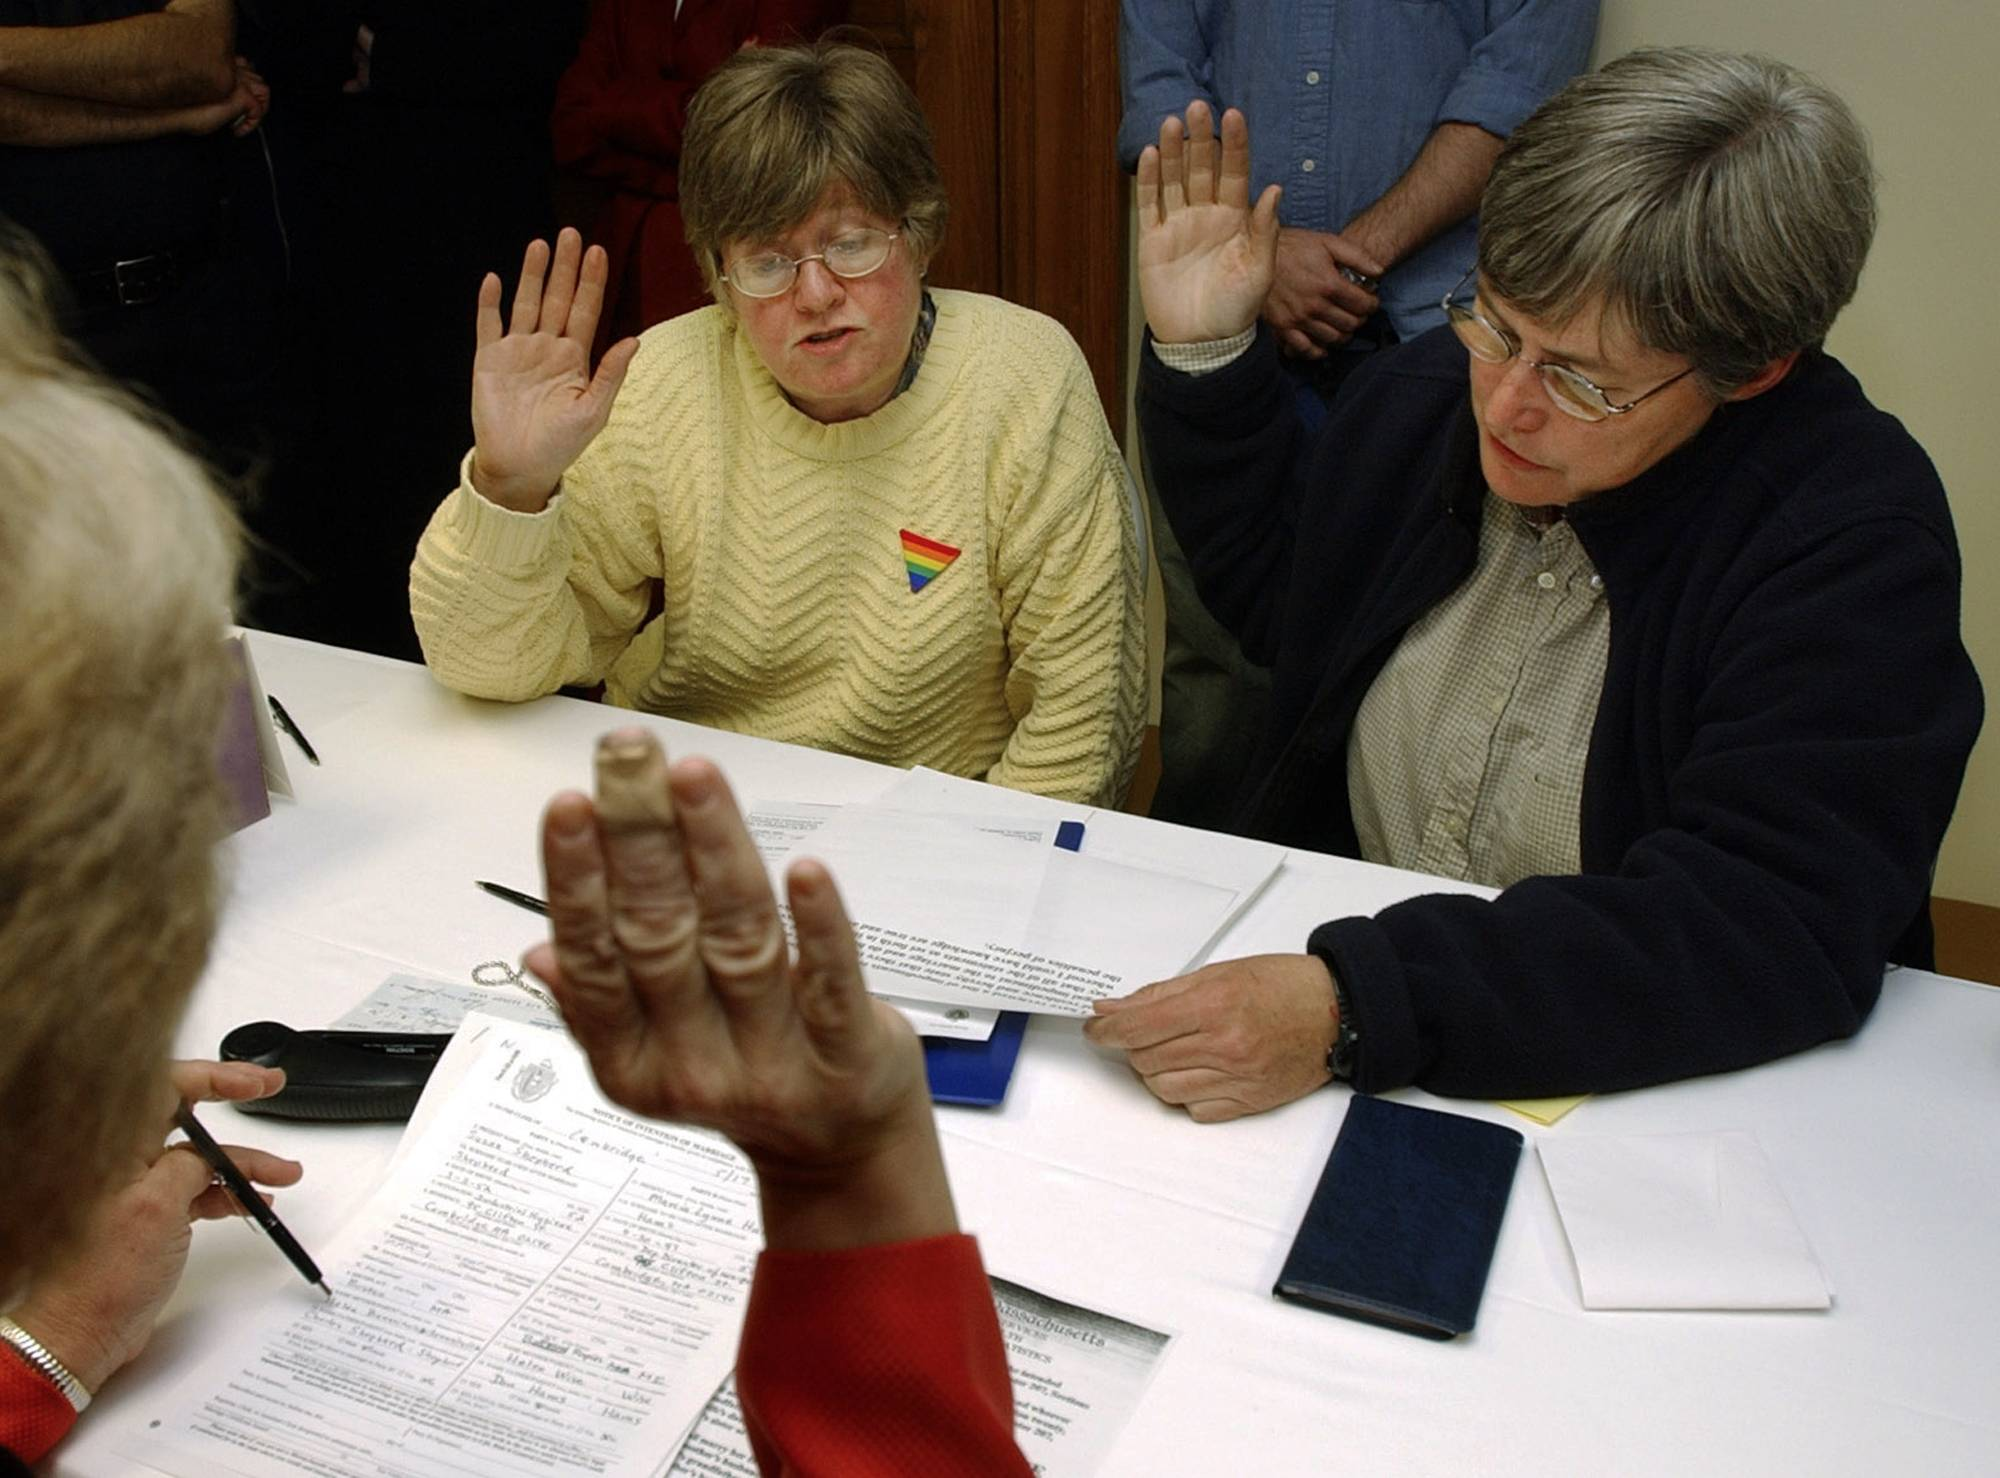 Marcia Hams, left, and her partner, Susan Shepherd, right, take an oath administered by City Clerk D. Margaret Drury, foreground, during the application process for a marriage license in 2004. Hams and Shepherd were the first couple to complete the application process as Massachusetts became the first state to legalize same-sex marriage in the United States, and were wed later that day.